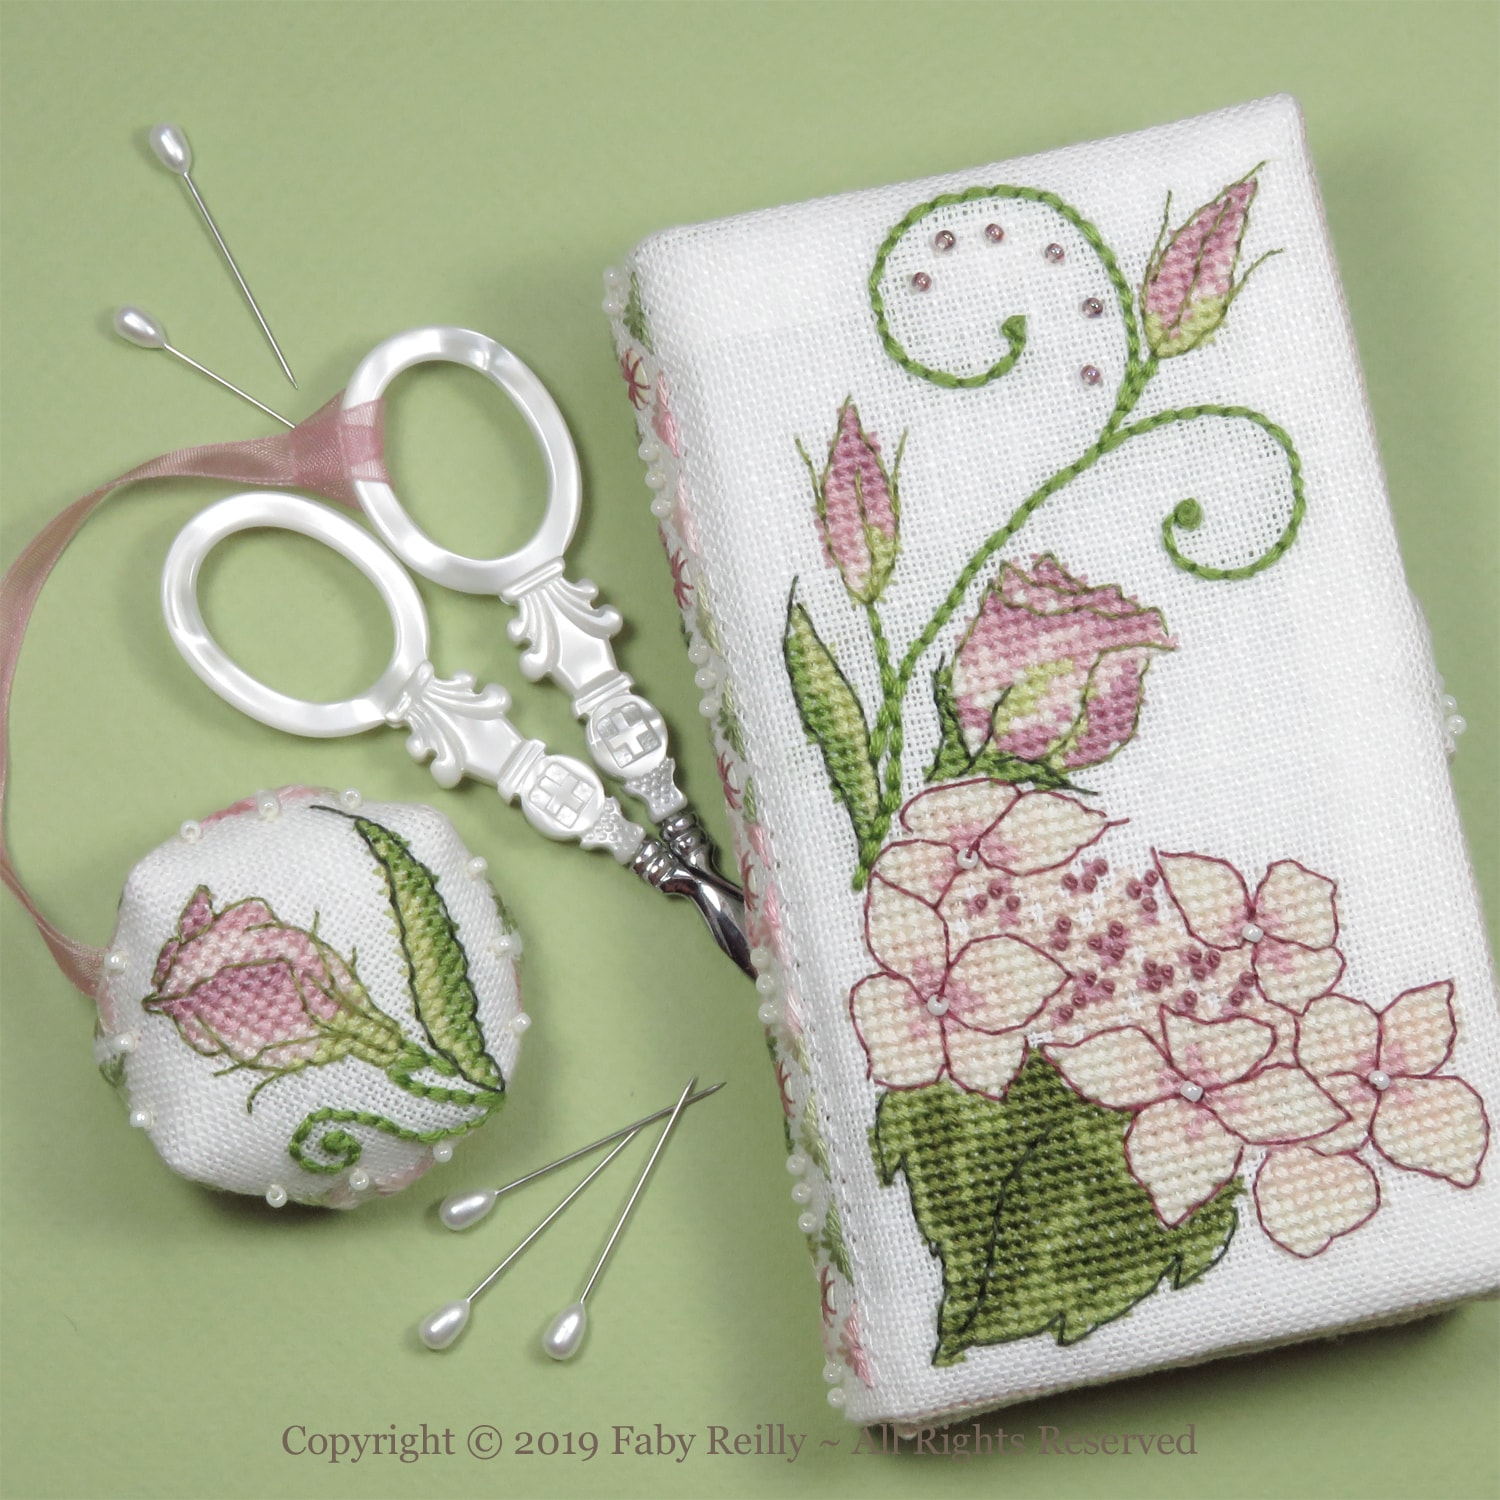 brand new f09d7 4d885 Lizzie Stitching Wallet - Faby Reilly Designs